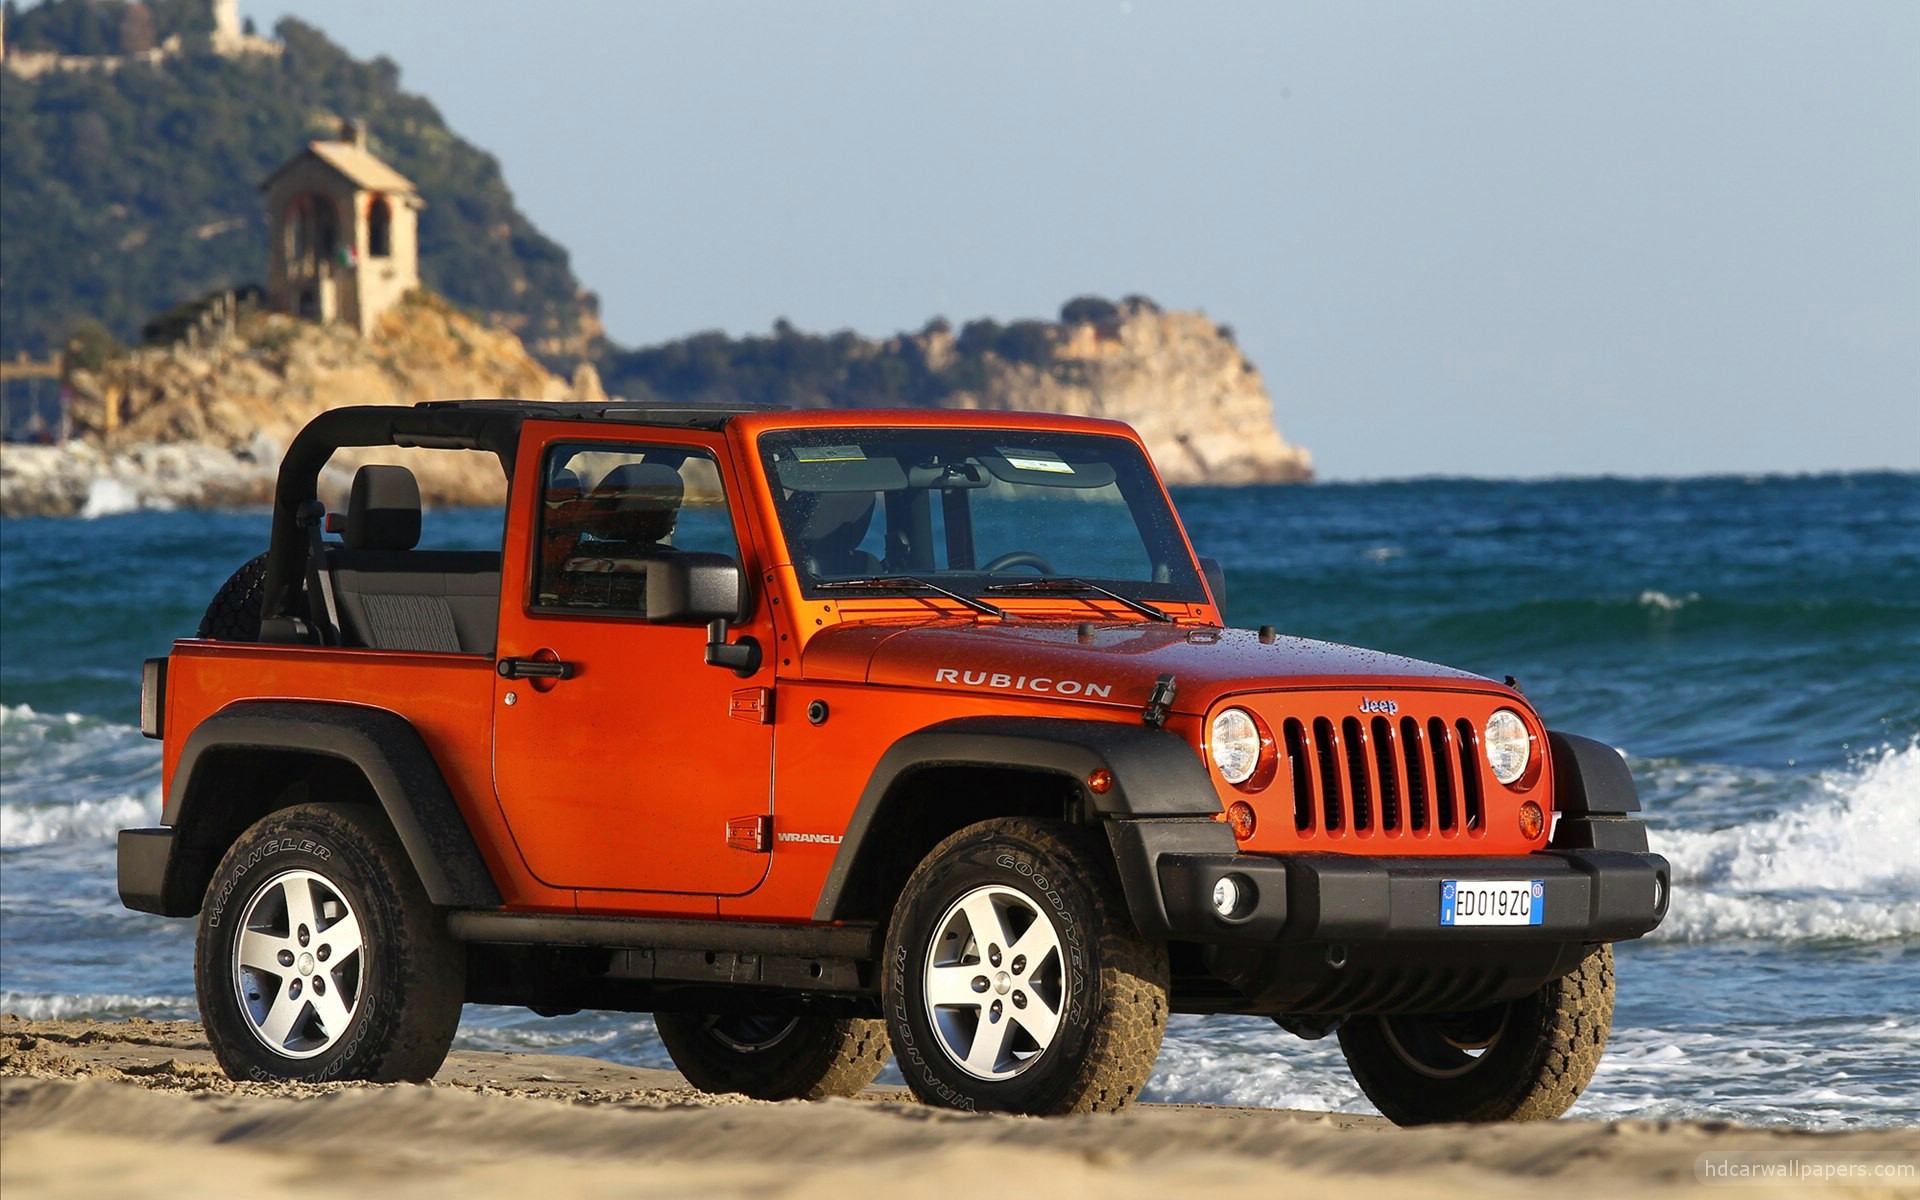 Jeep Car Images Hd: Jeep Wrangler 2012 Wallpaper